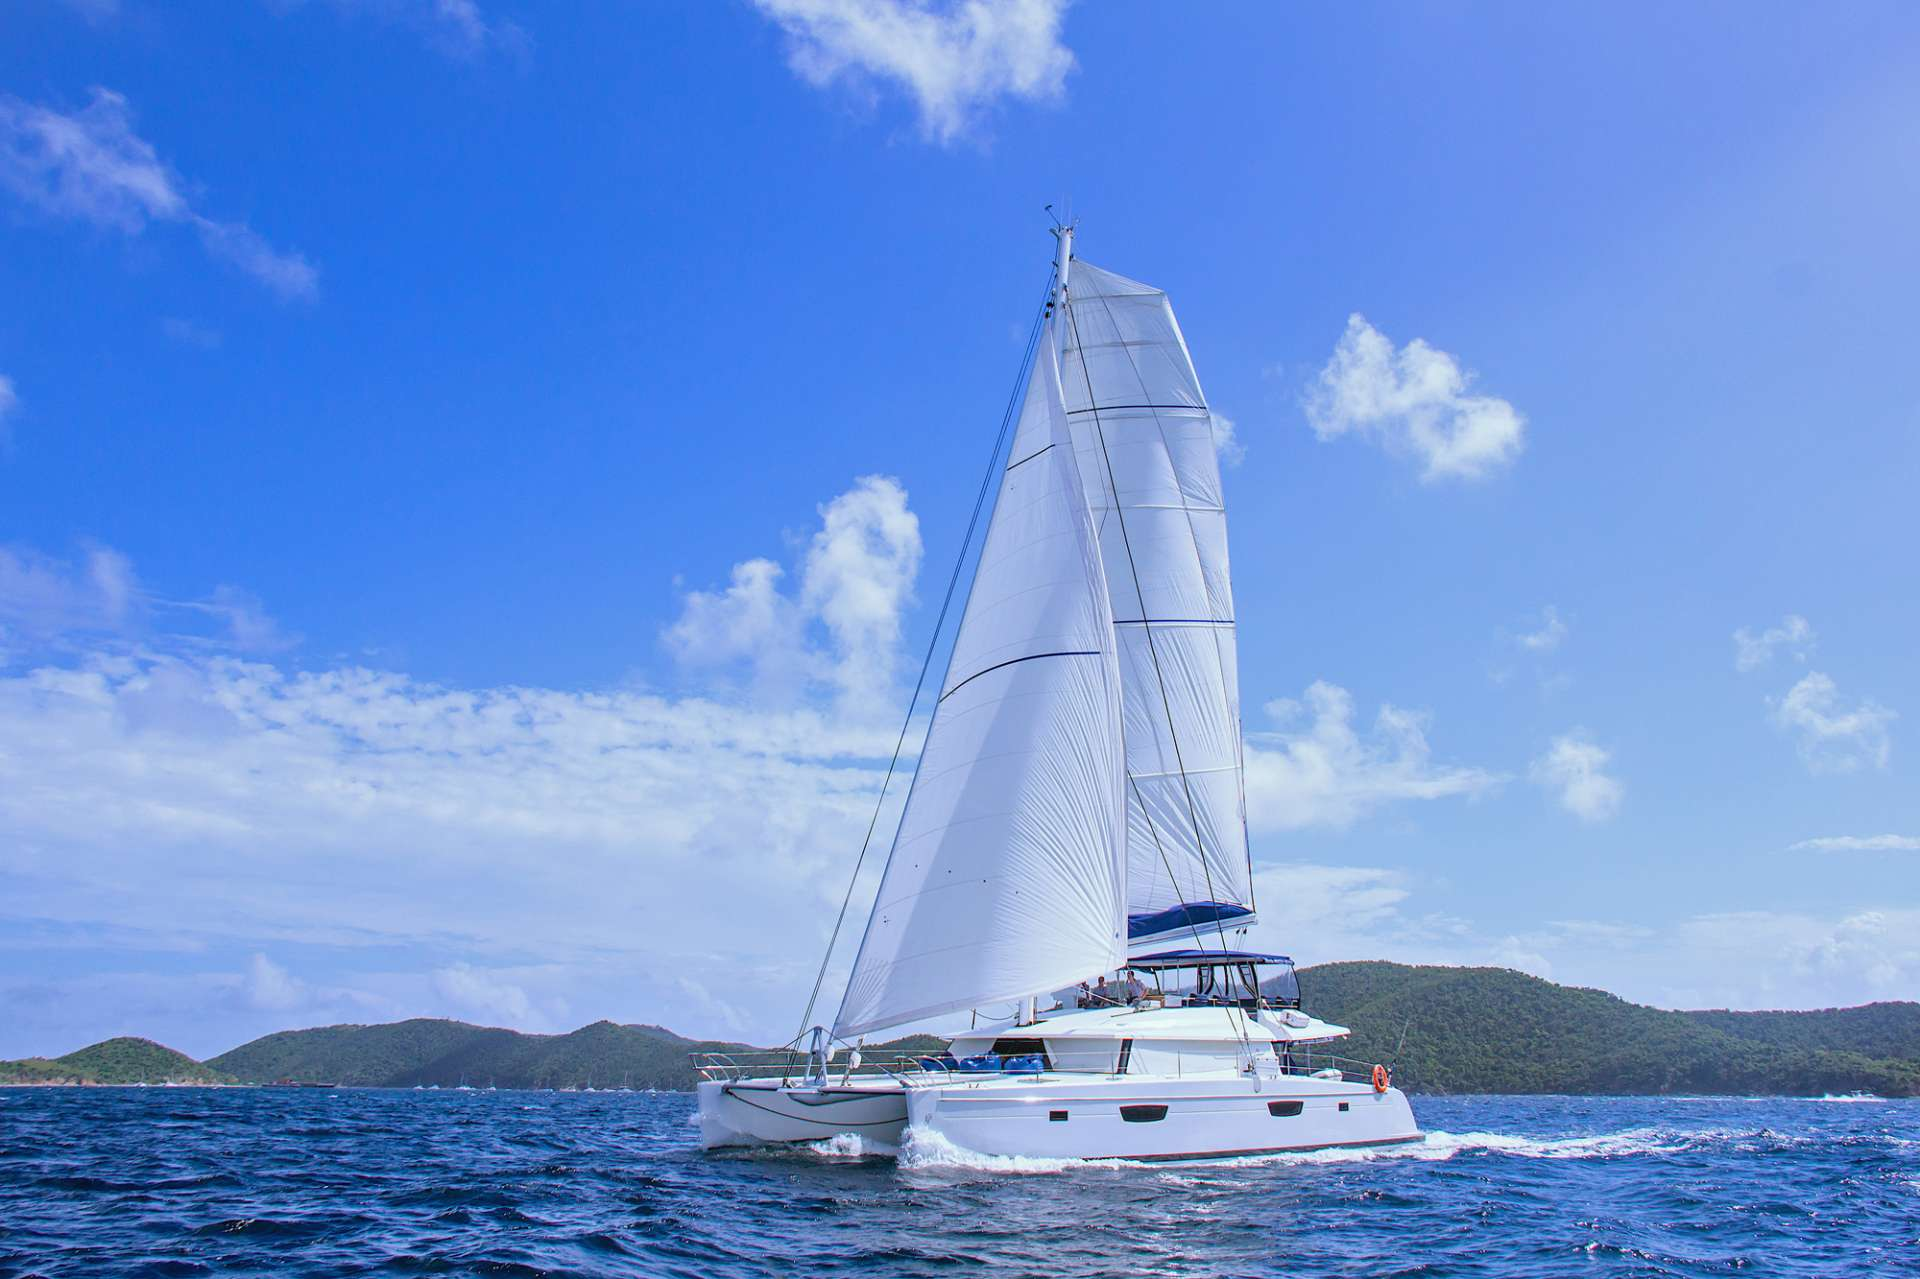 Cat Yacht 'Cat', 10 PAX, 3 Crew, 67.00 Ft, 20.00 Meters, Built 2017, Fountaine-Pajot, Refit Year The latest, 2020 electronics and equipment onboard. New larger tender June 2019